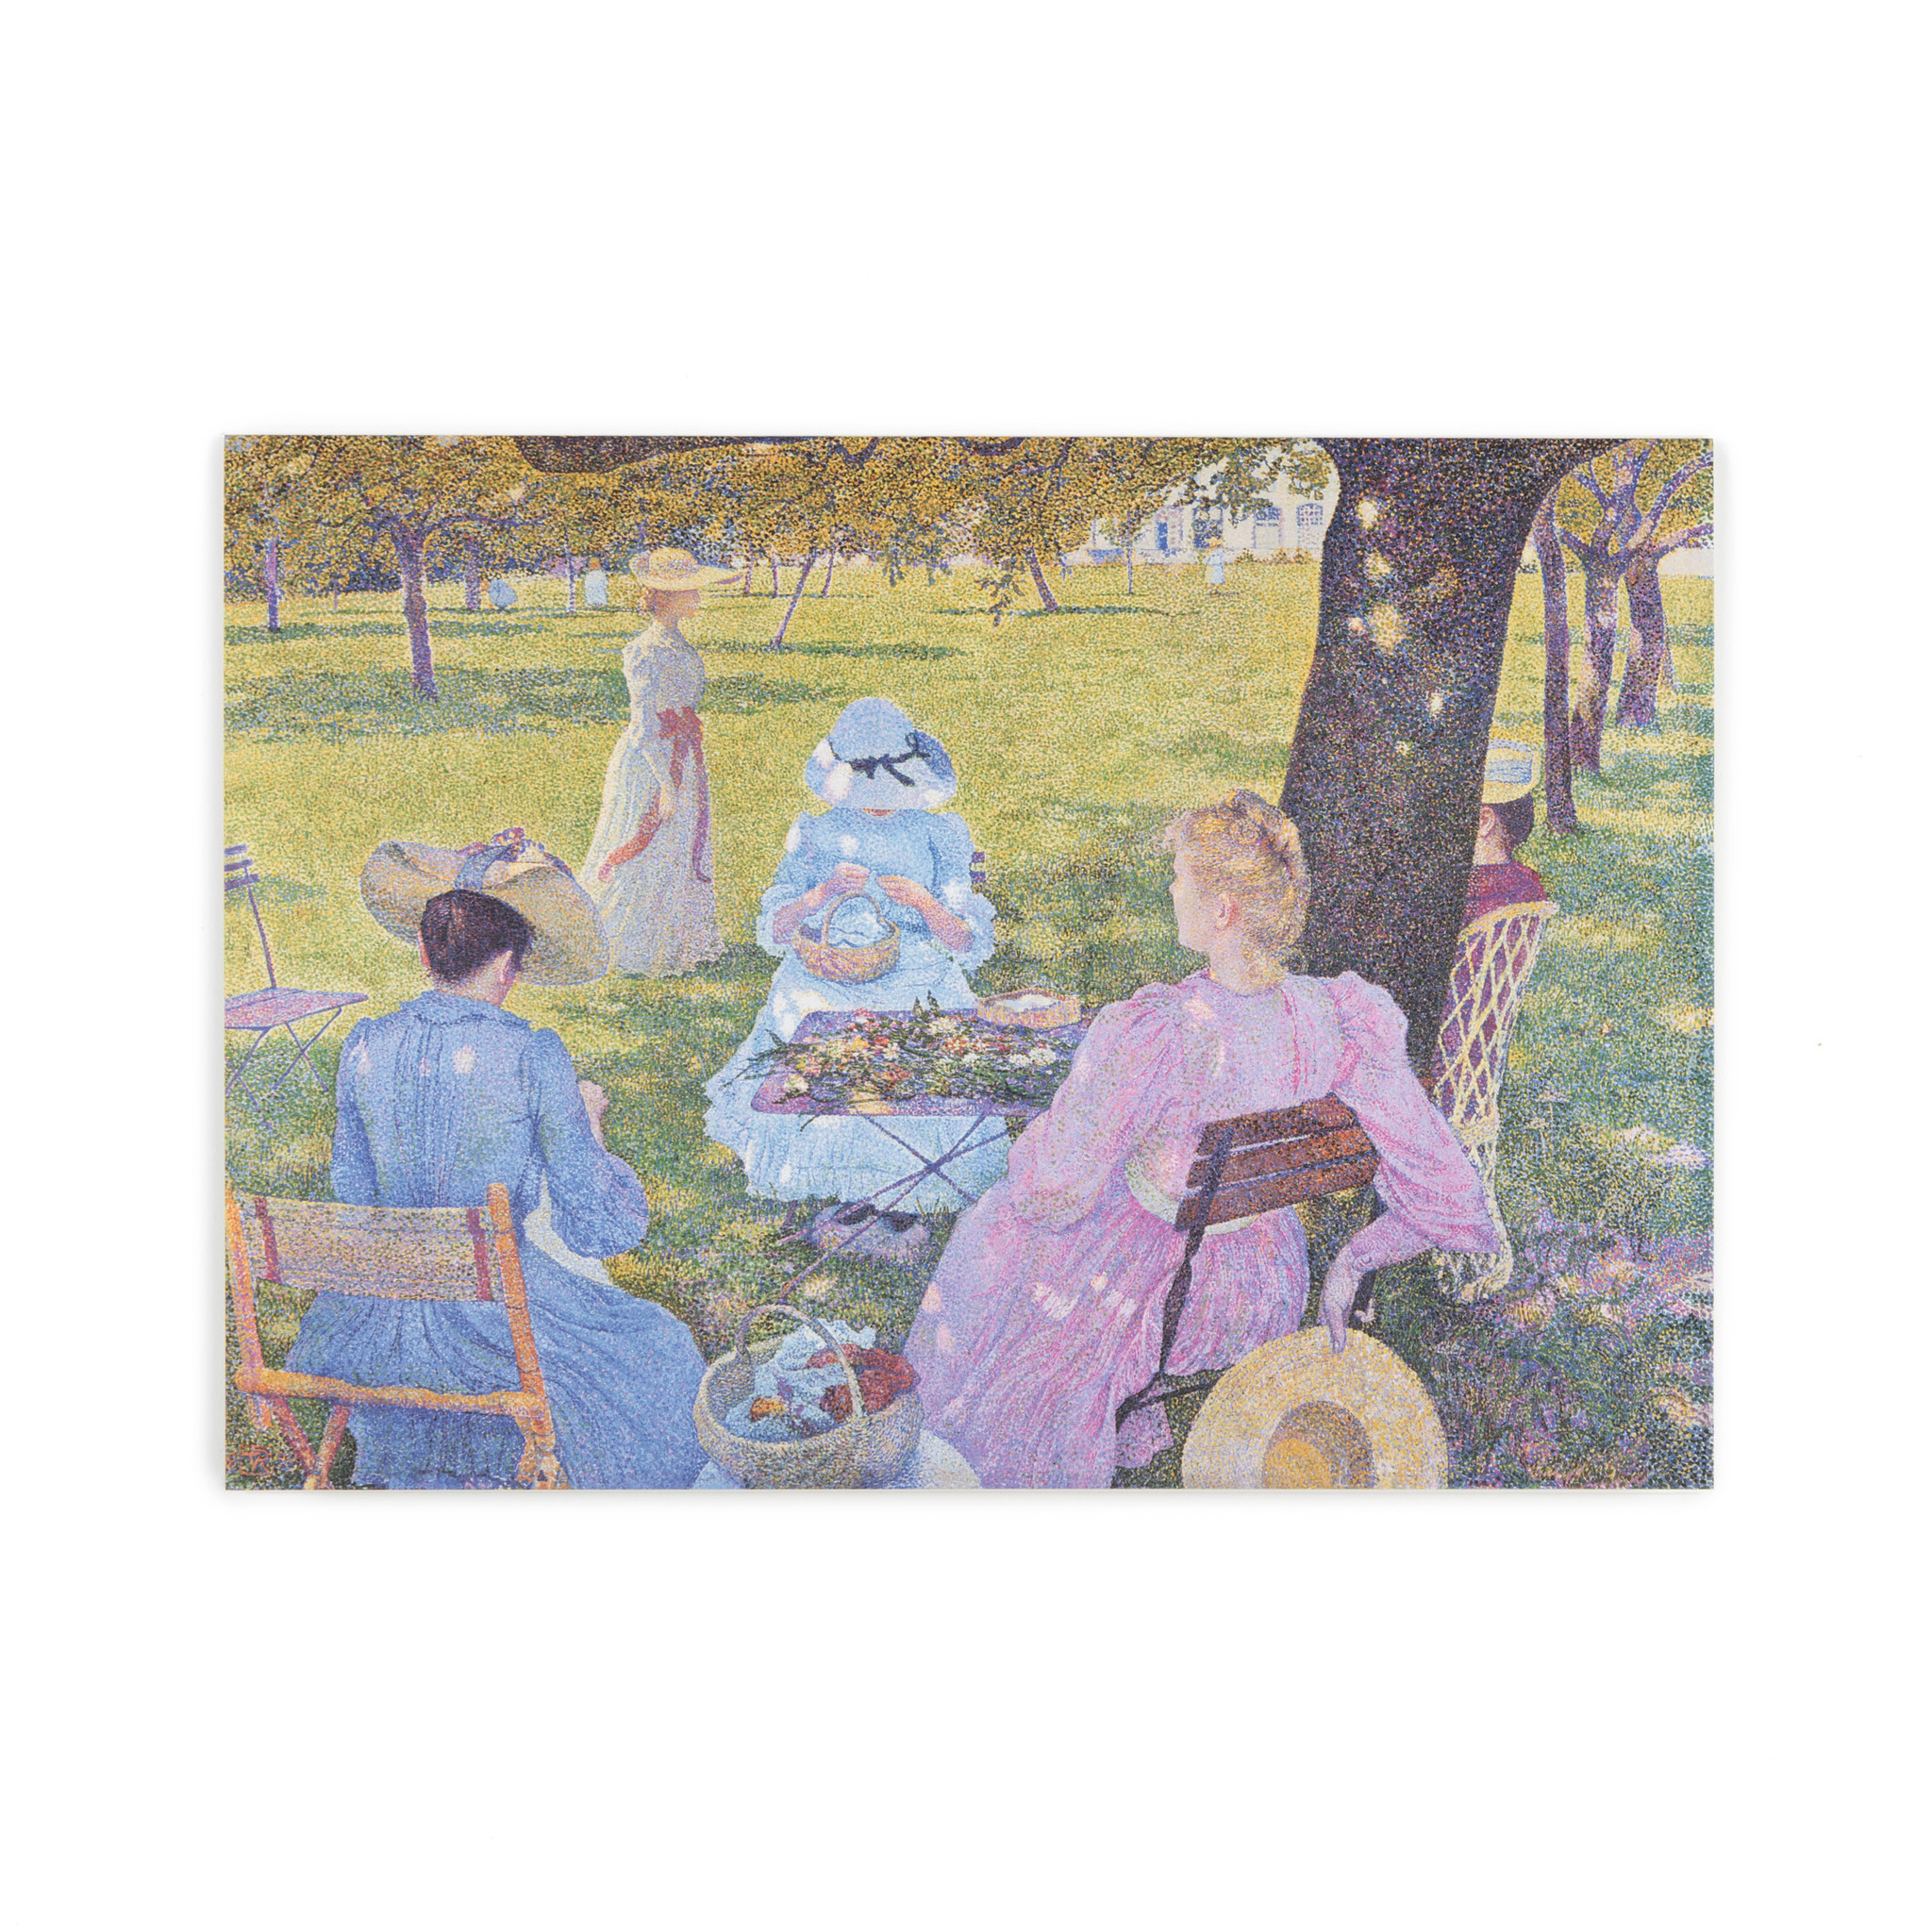 Double card Théo van Rysselberghe The orchard